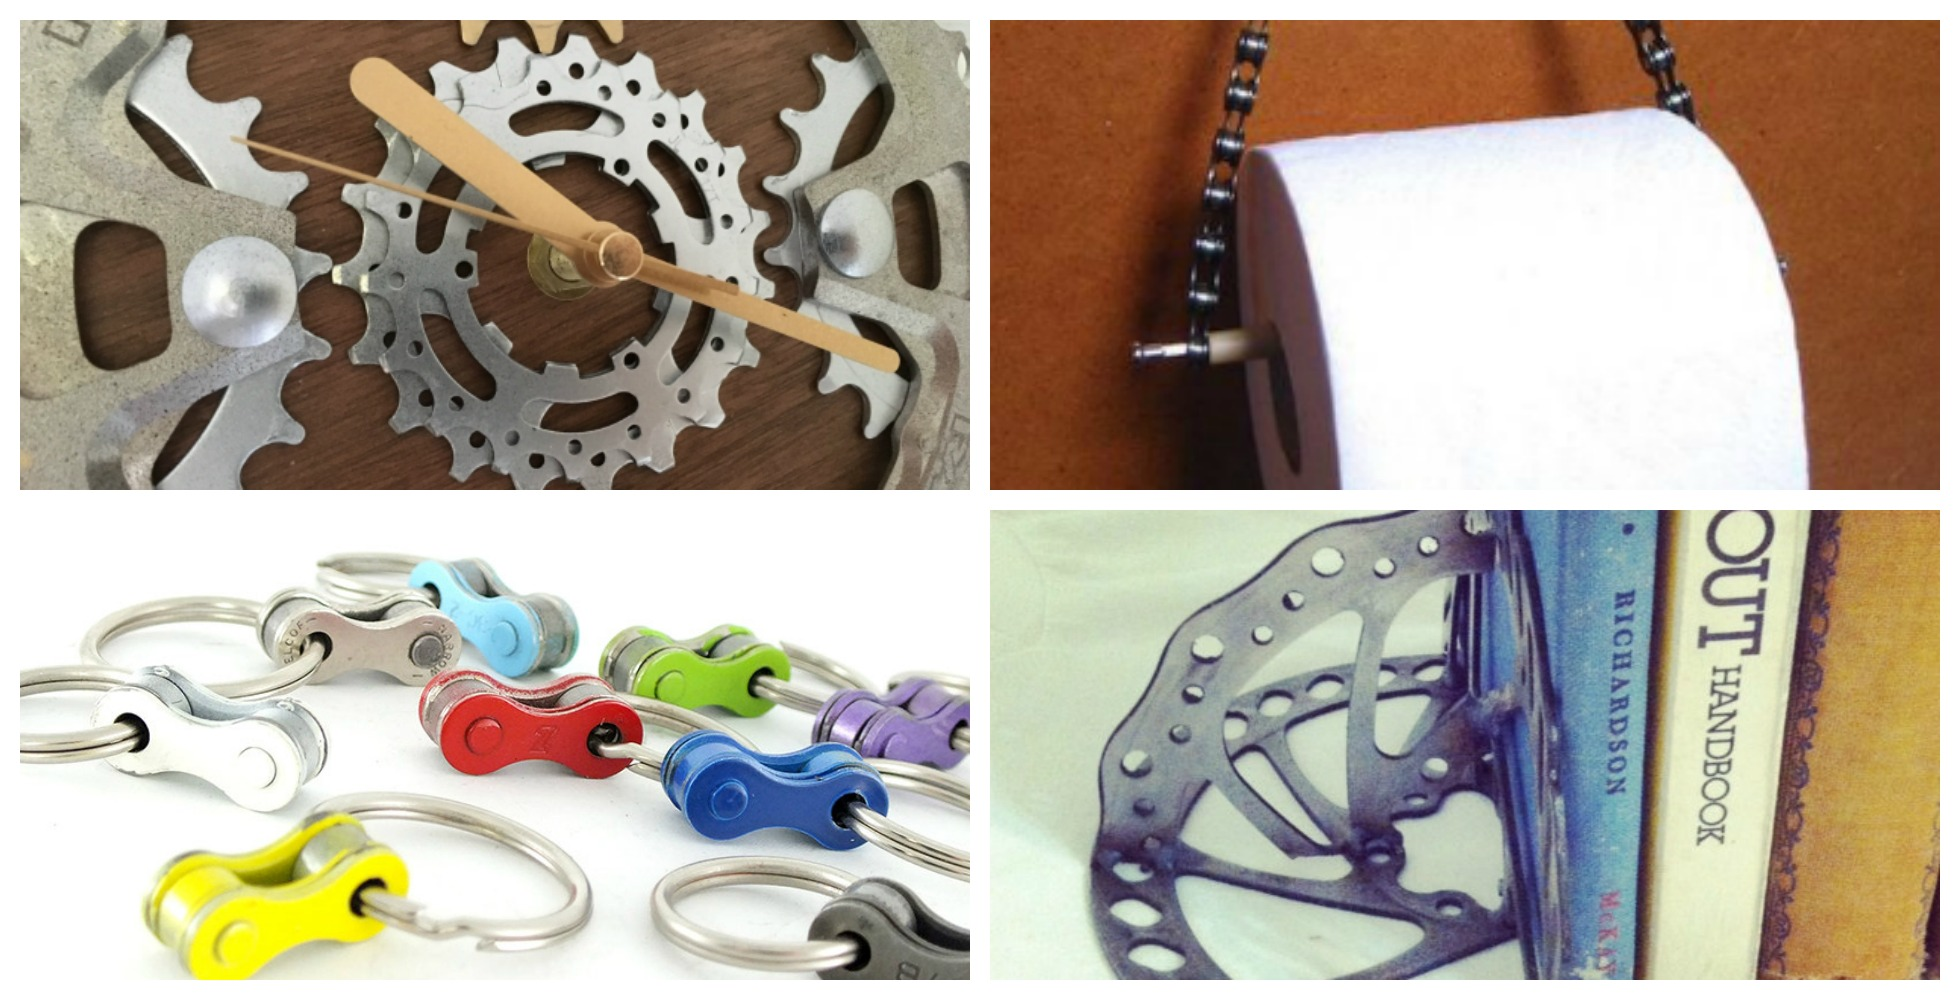 Upcycling Ideen Kinder 10 Upcycling Ideen Für Alte Bikeparts | Prime Mountainbiking